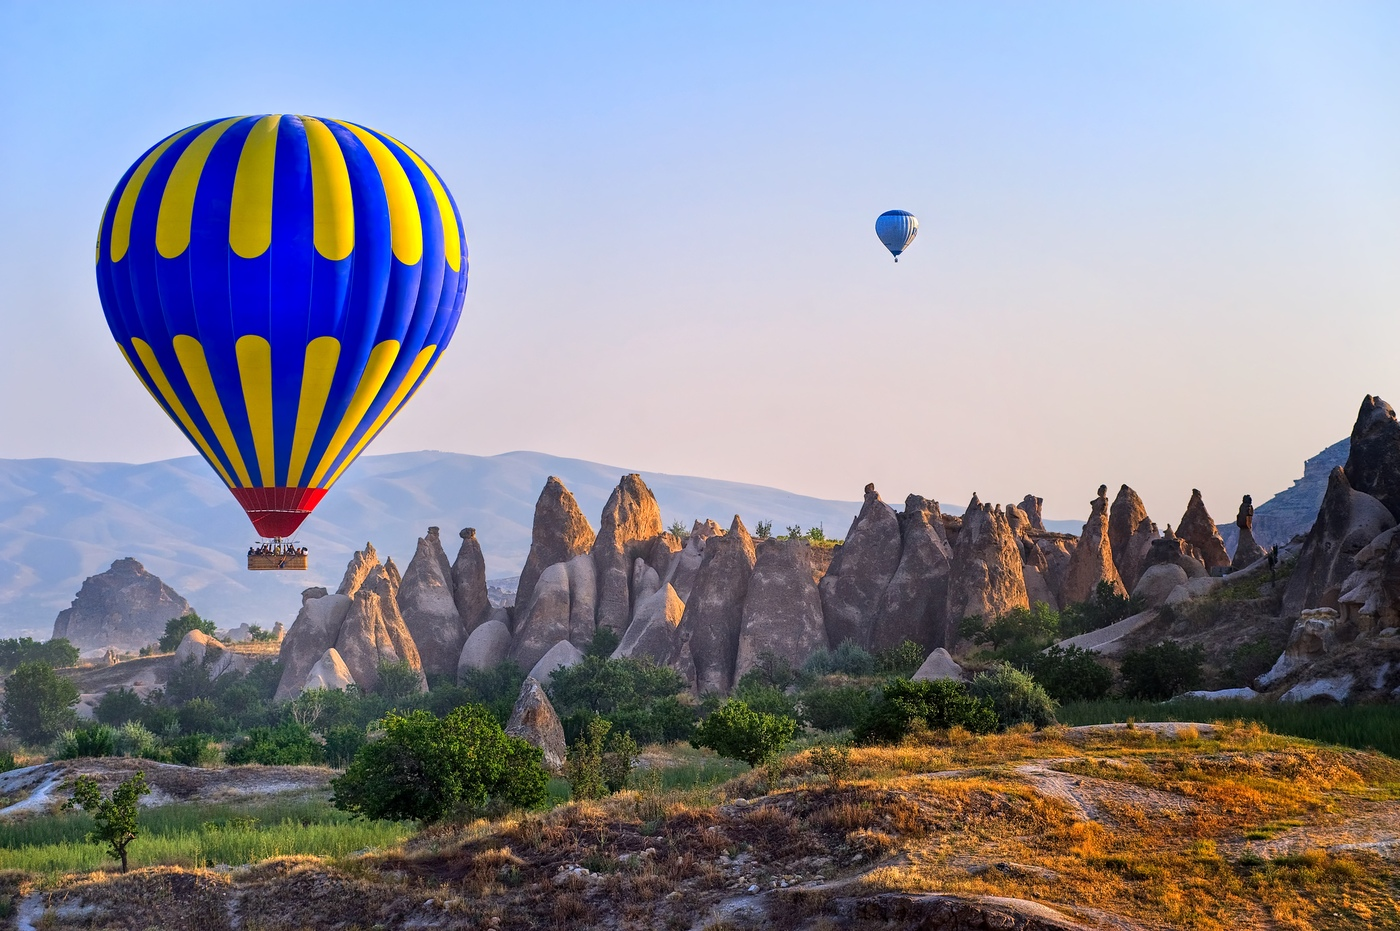 Sunrise at Cappadocia 20 travel bucket list ideas to do before 40 20 Travel Bucket List Ideas To do before 40 sunrise at cappadocia e5d3